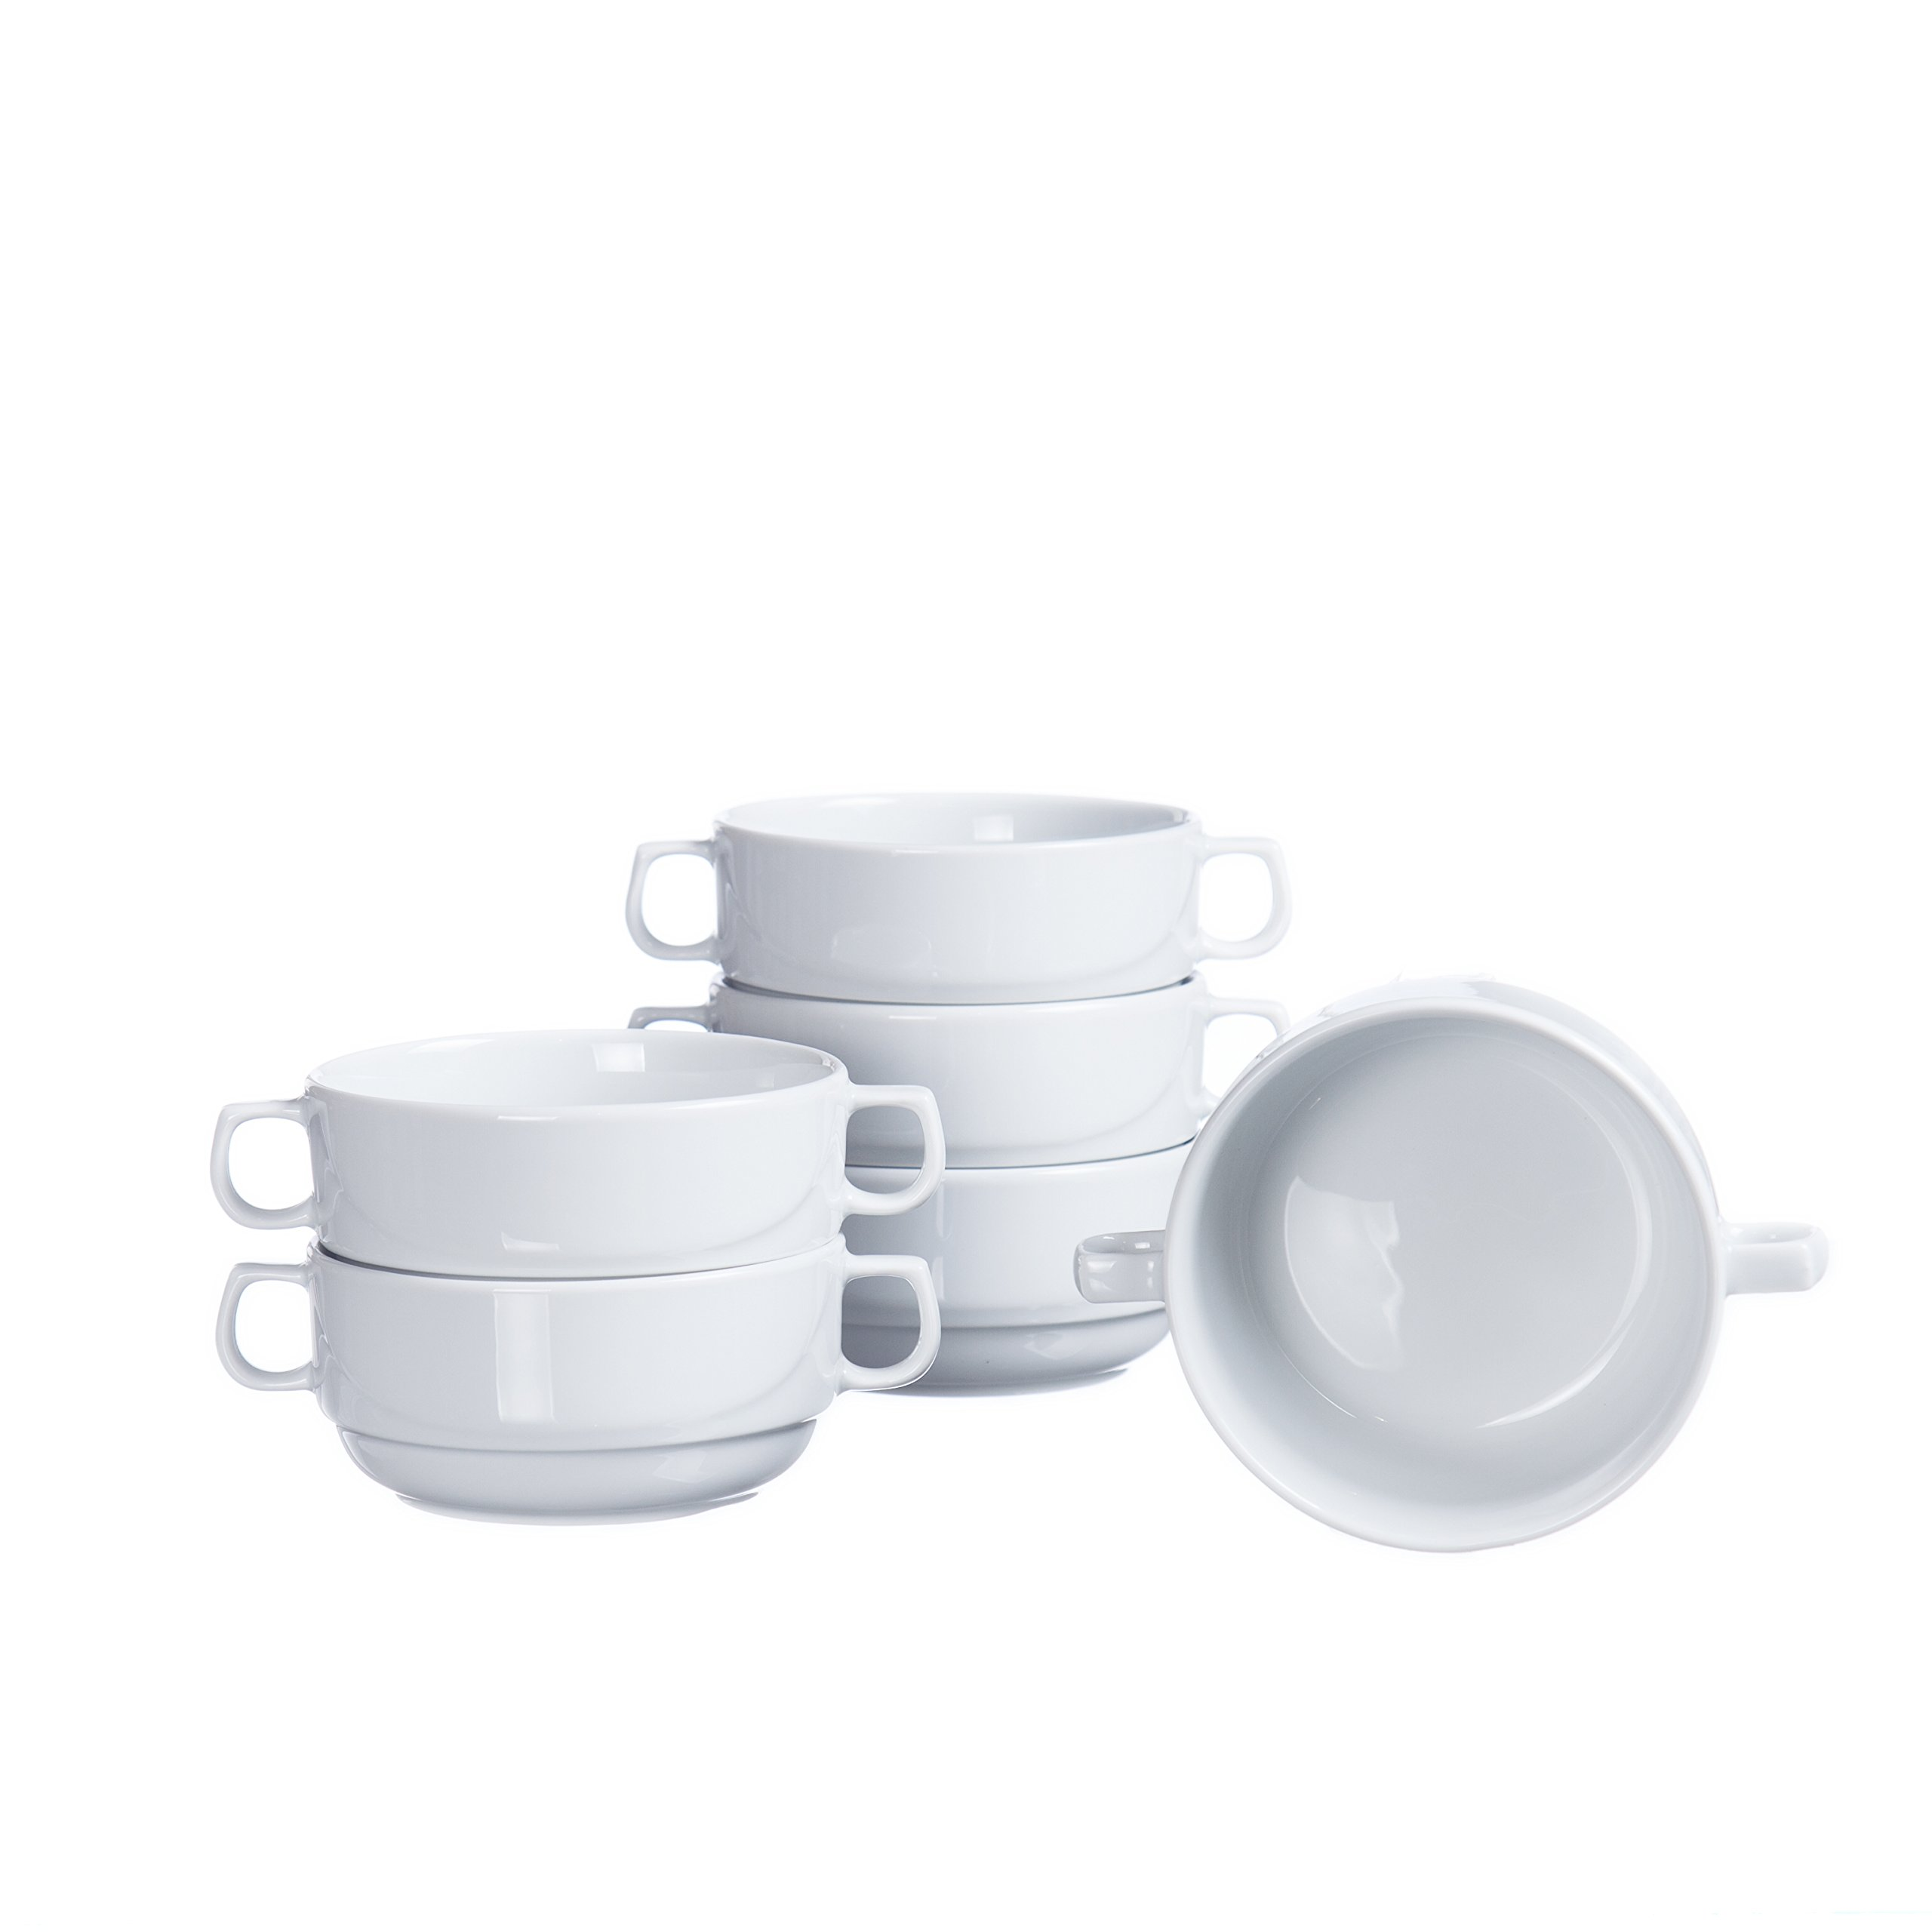 Stackable Soup/Cereal BOWLS with Handles (4-piece, 6-piece, 12-piece Sets), 10.8 Oz, White Porcelain, Restaurant&Hotel Quality (6)